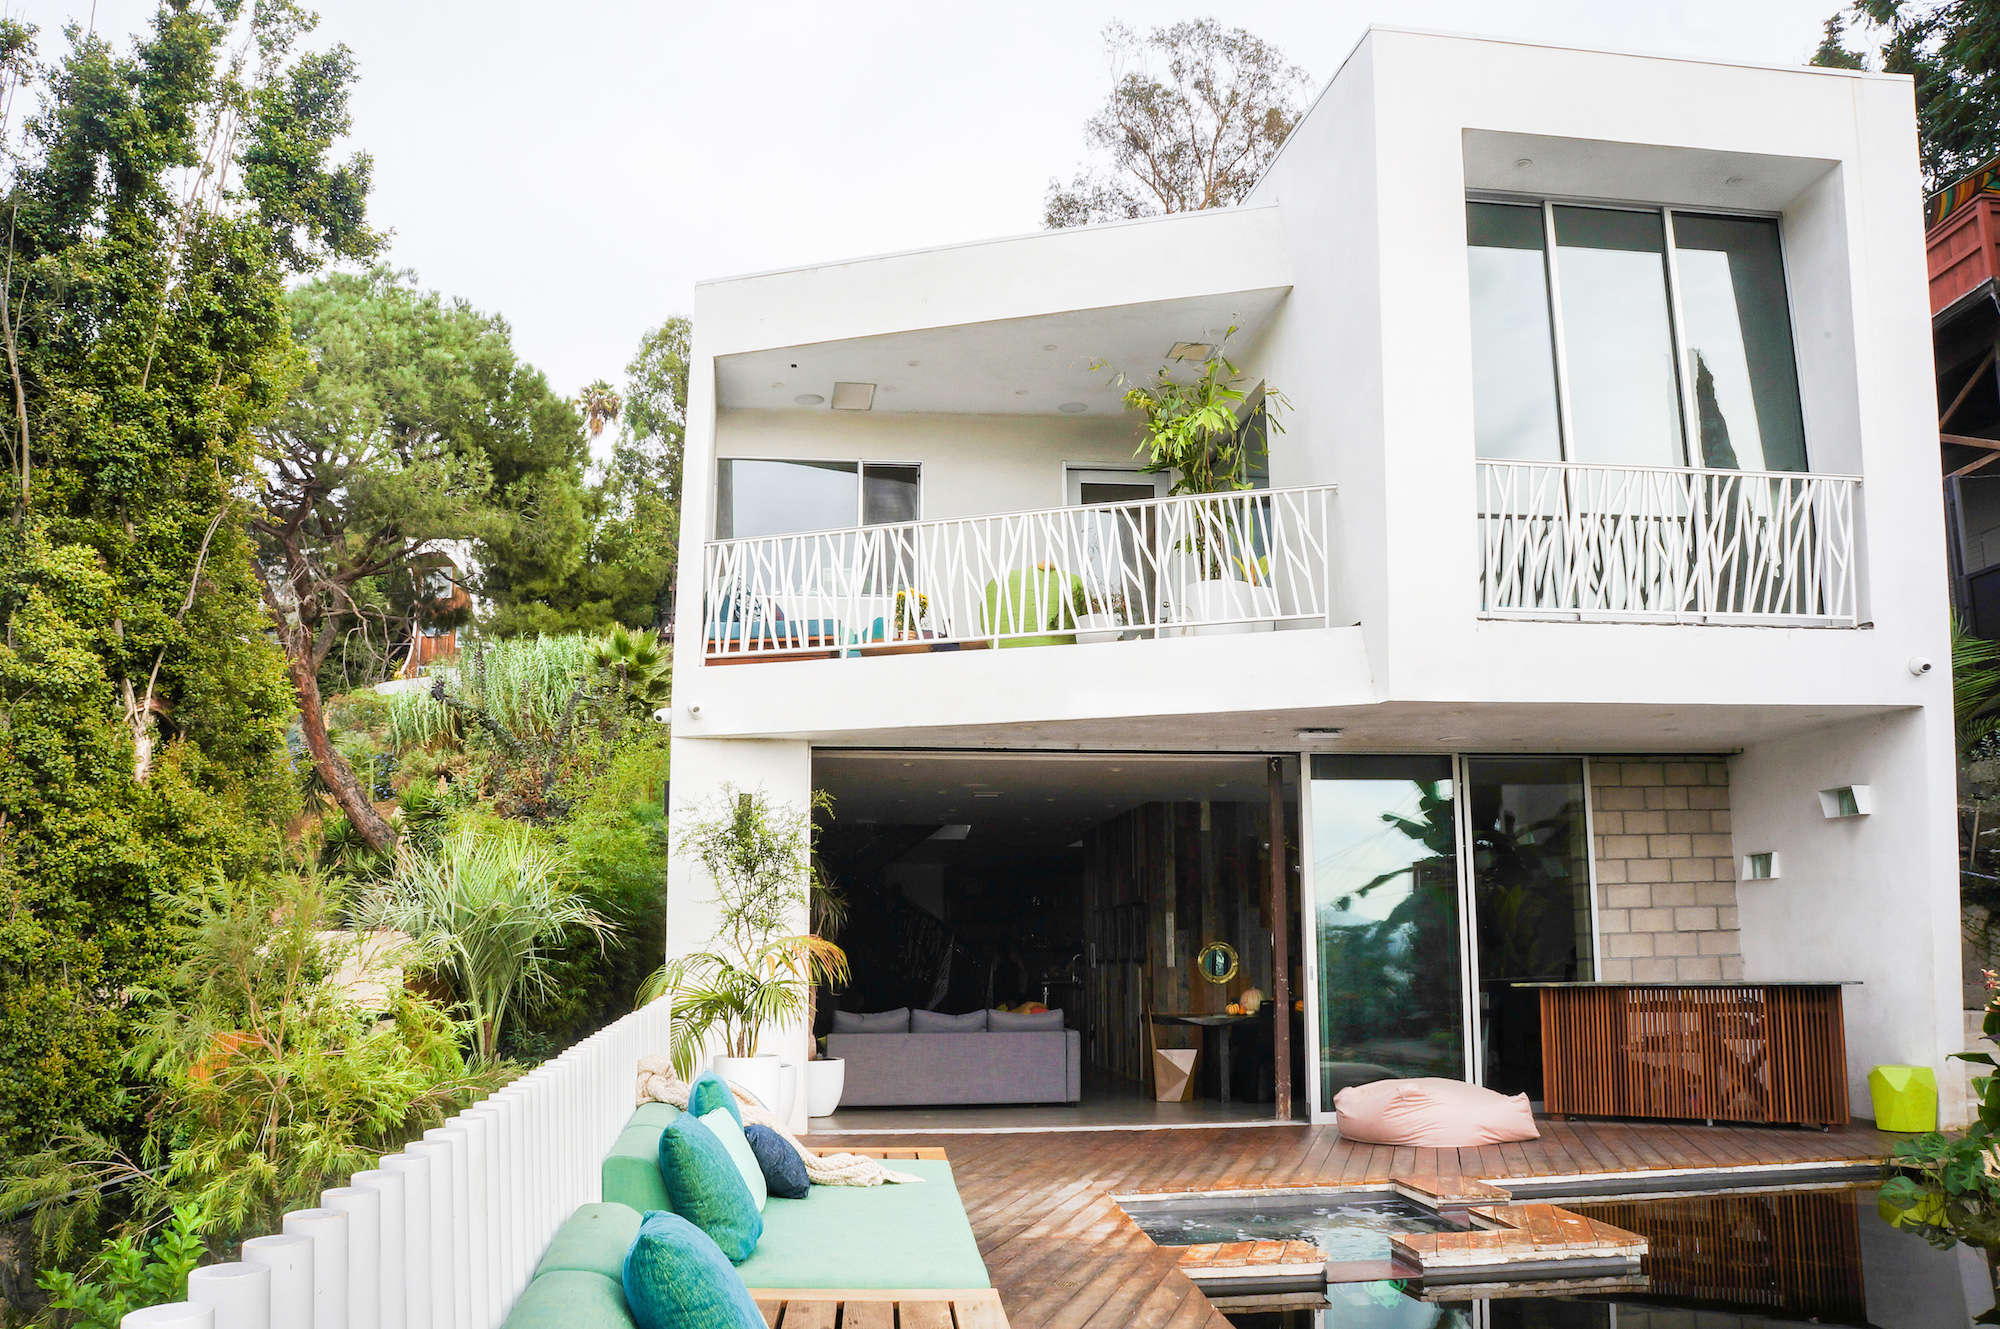 Modern Sustainability Redefined in Hillside Silver Lake Home from office42 Architecture and Russell Wightman Design